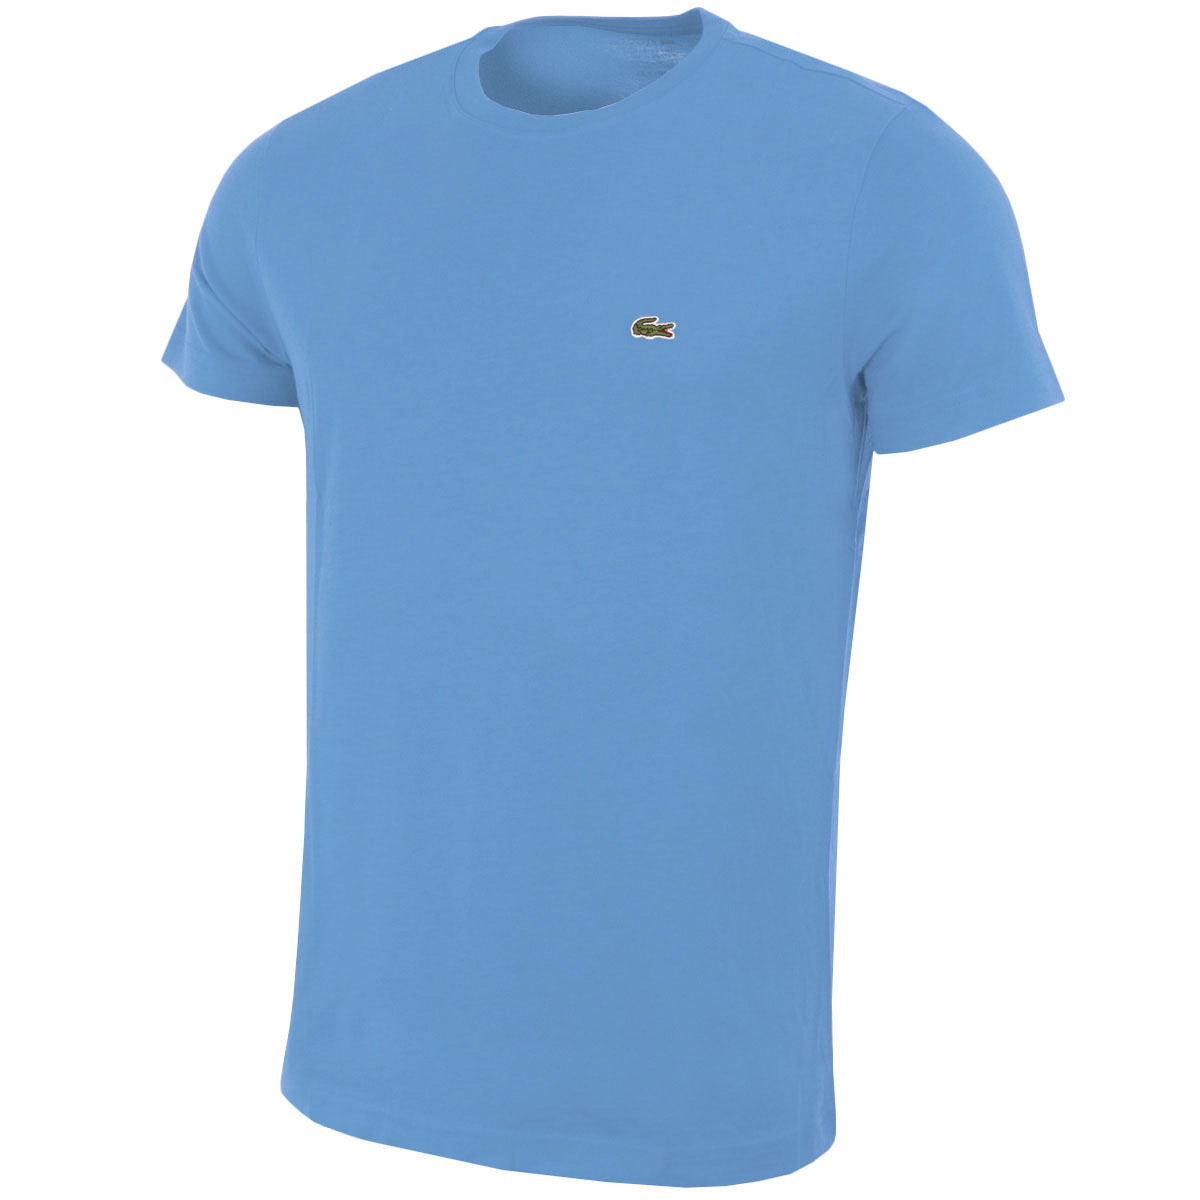 Lacoste 2016 Mens Short Sleeve Crew Neck T Shirt Pima